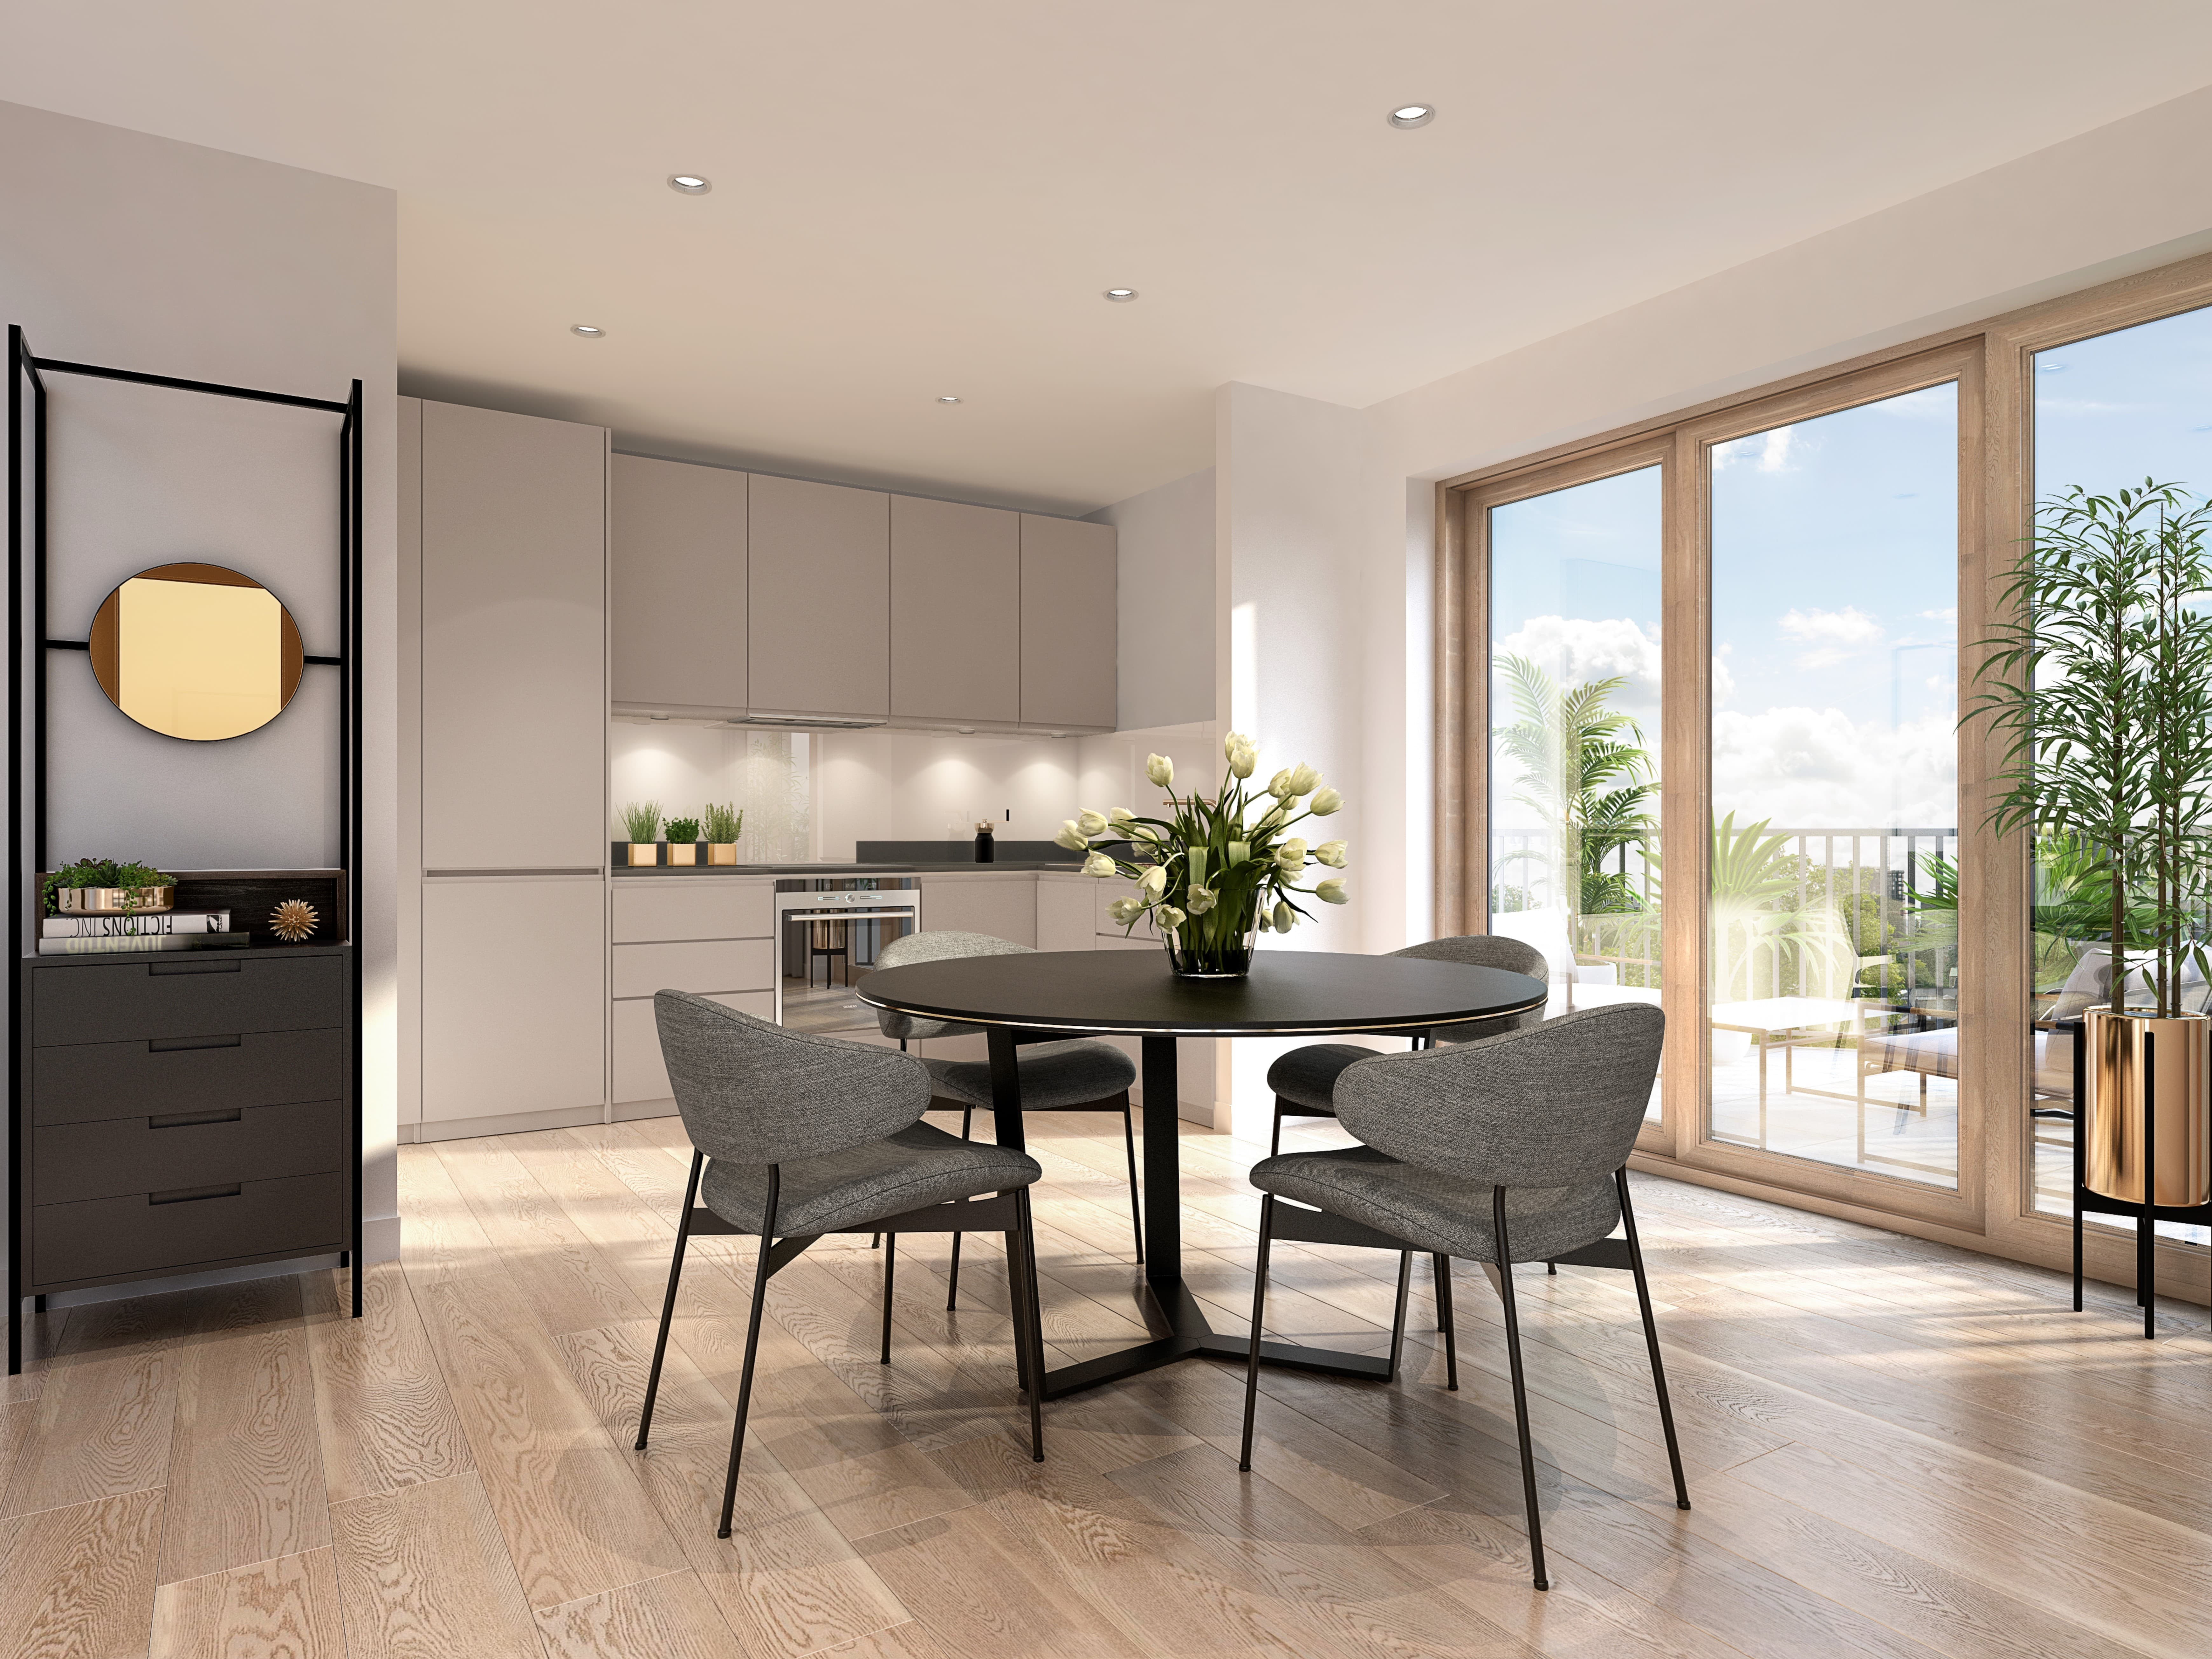 New Build Homes and New Apartments For Sale   New Developments in ...